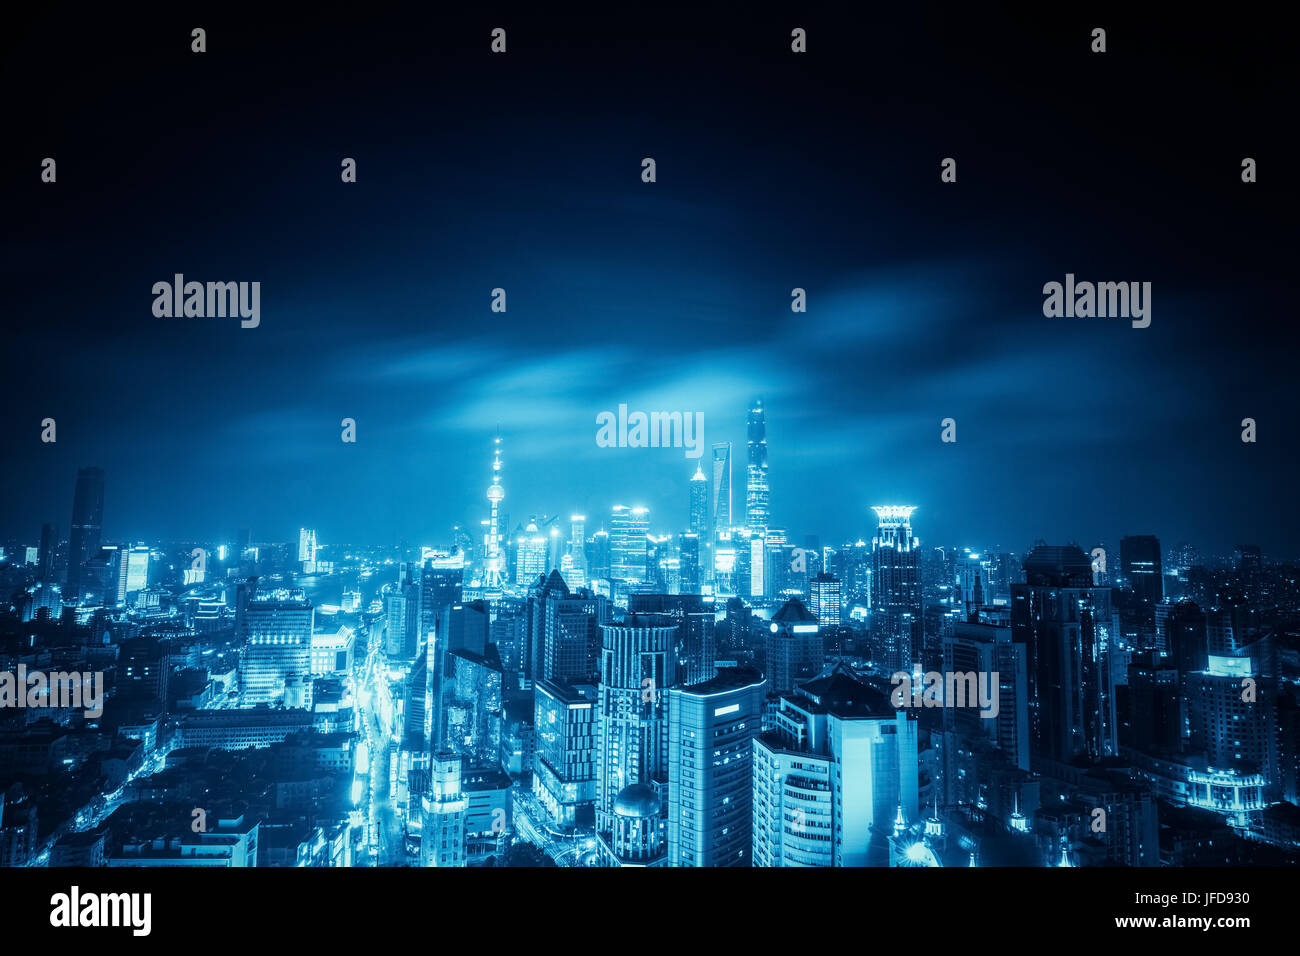 shanghai at night with blue tone - Stock Image